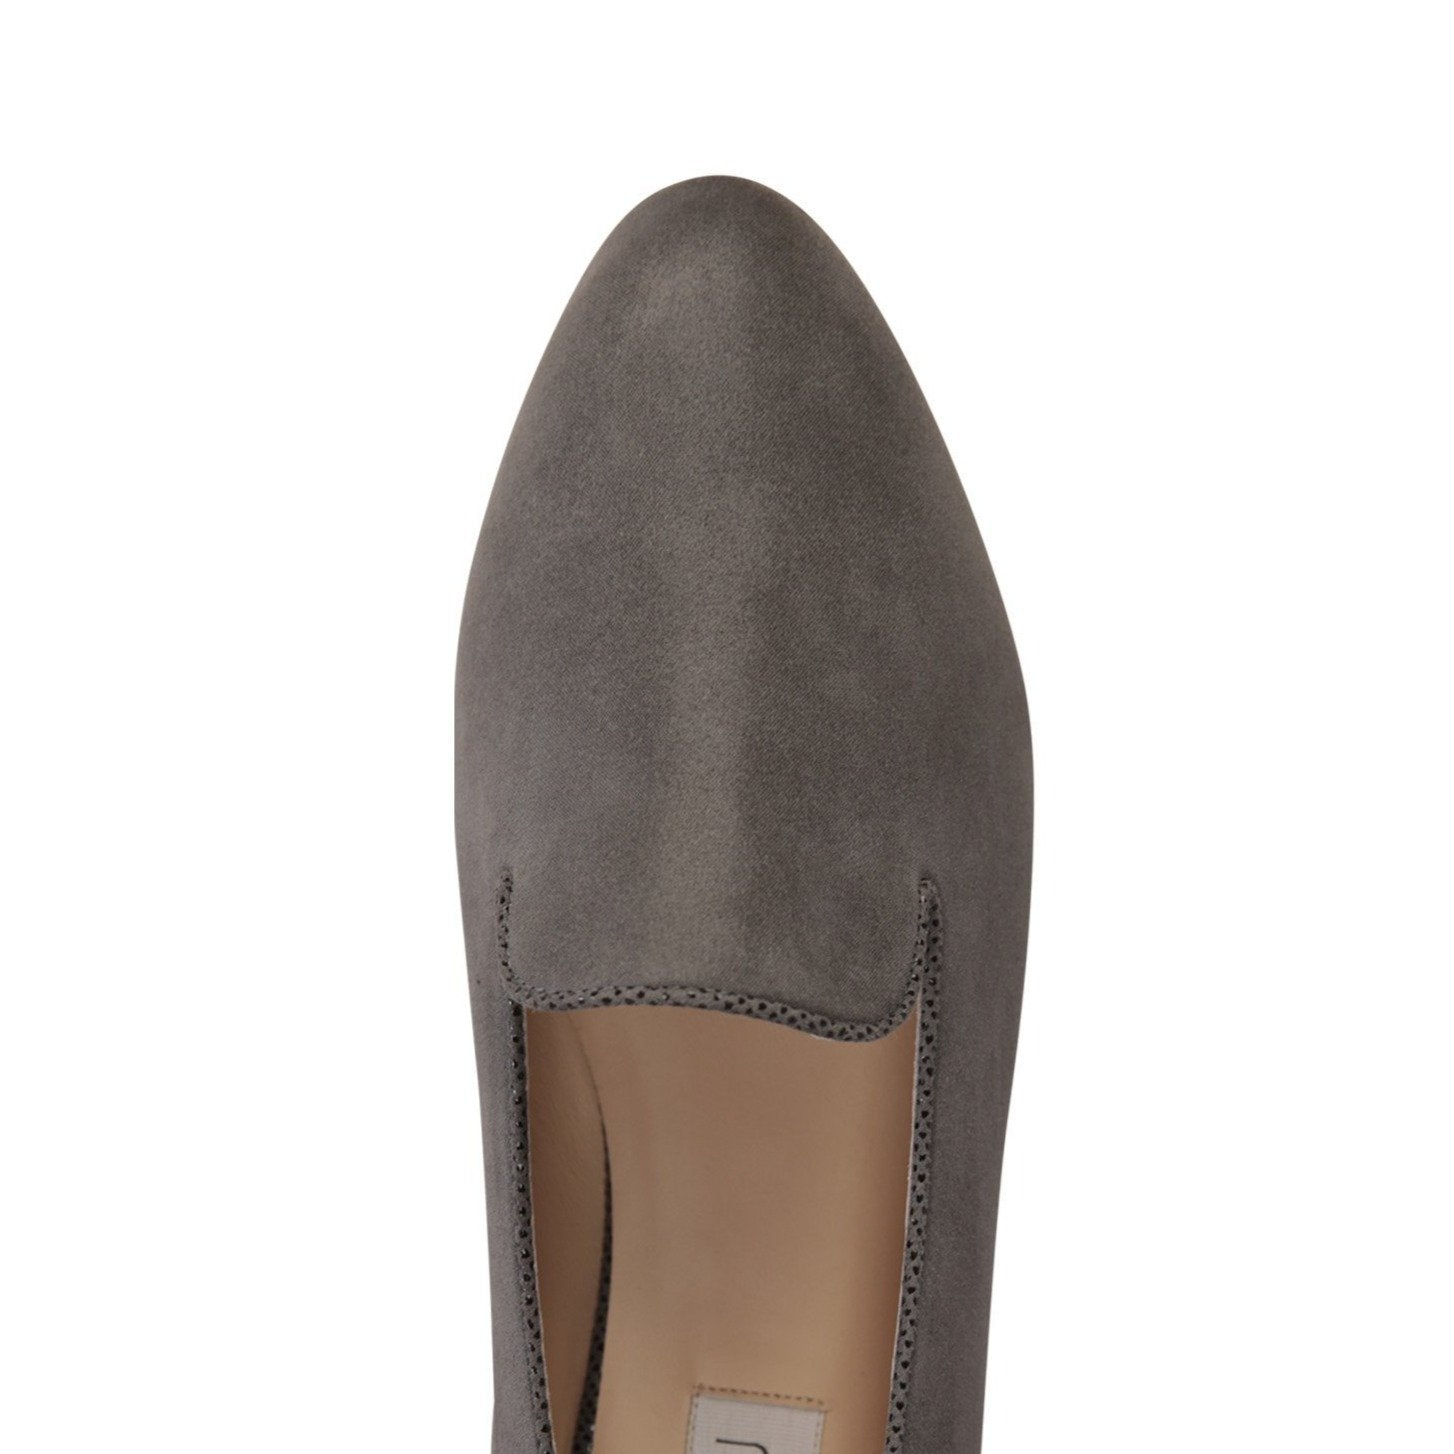 RAVENNA - Hydra Anthracite + Karung, VIAJIYU - Women's Hand Made Sustainable Luxury Shoes. Made in Italy. Made to Order.